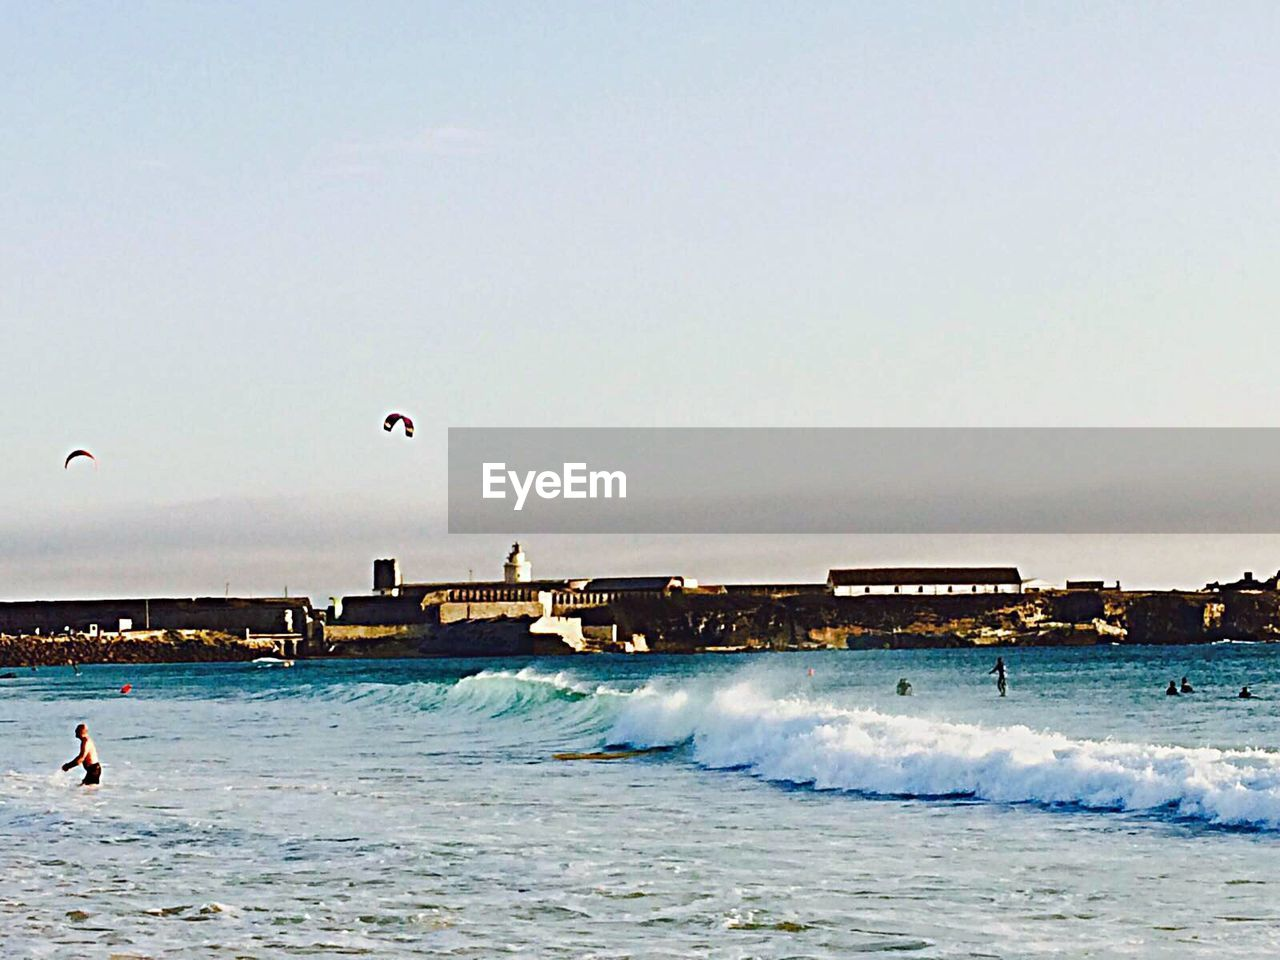 sea, water, motion, wave, extreme sports, leisure activity, real people, beach, nature, surfing, adventure, lifestyles, sport, enjoyment, outdoors, fun, sky, vacations, men, day, clear sky, horizon over water, beauty in nature, scenics, one person, people